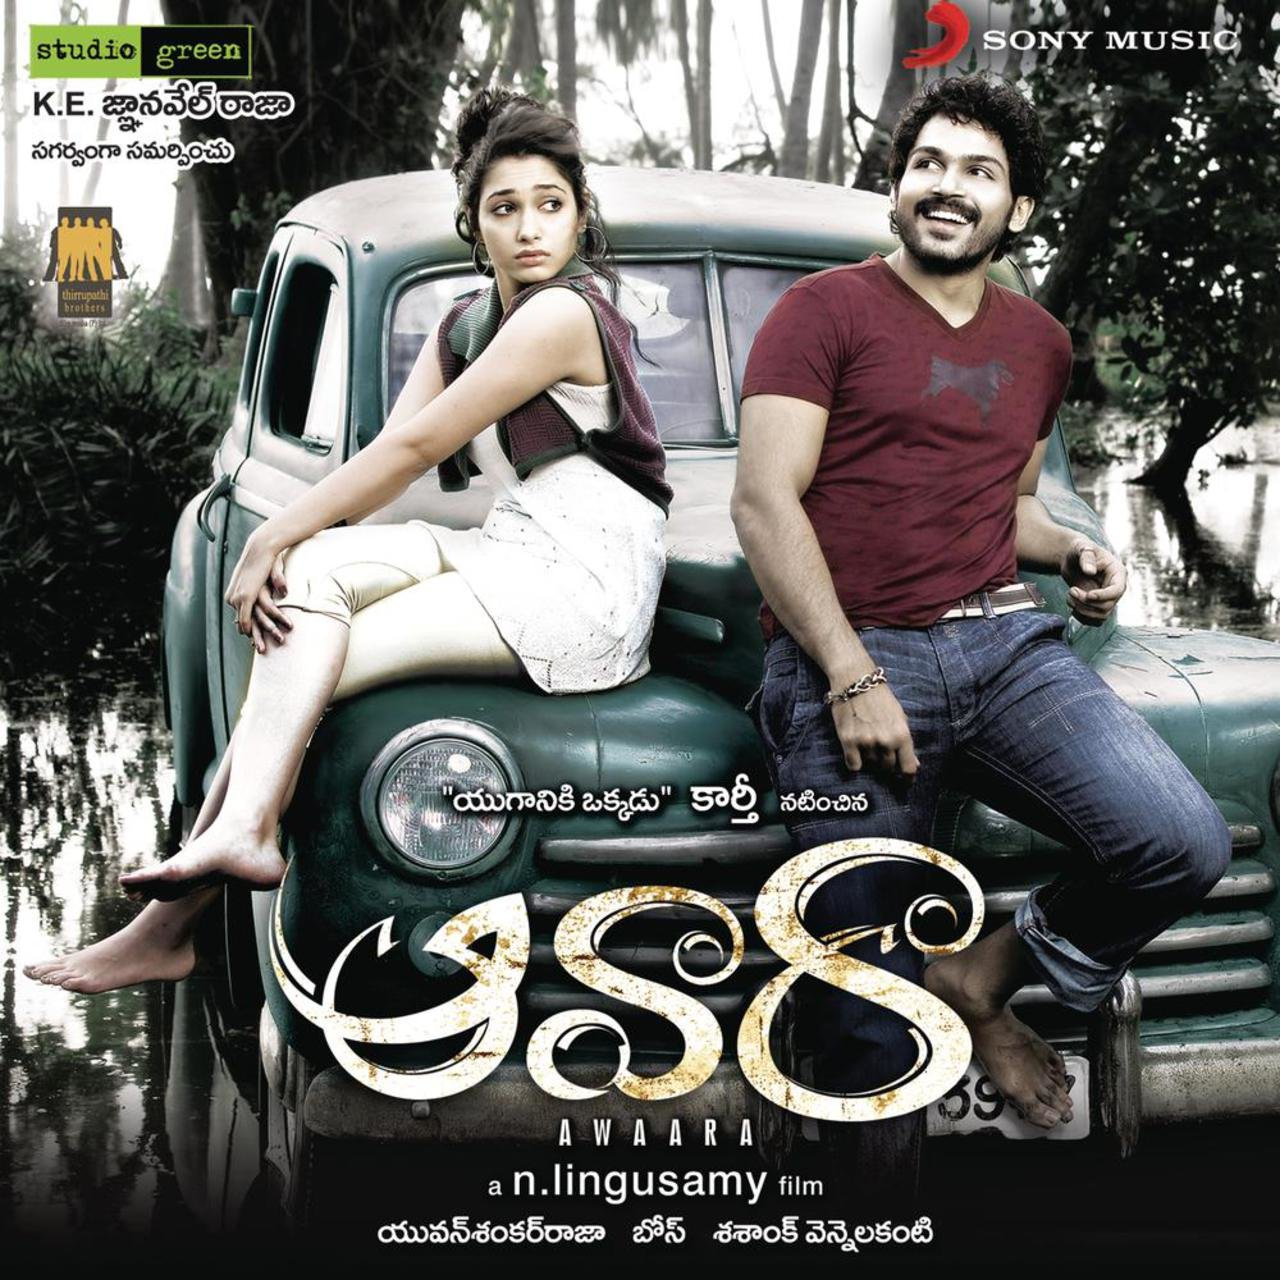 Awaara (Original Motion Picture Soundtrack)